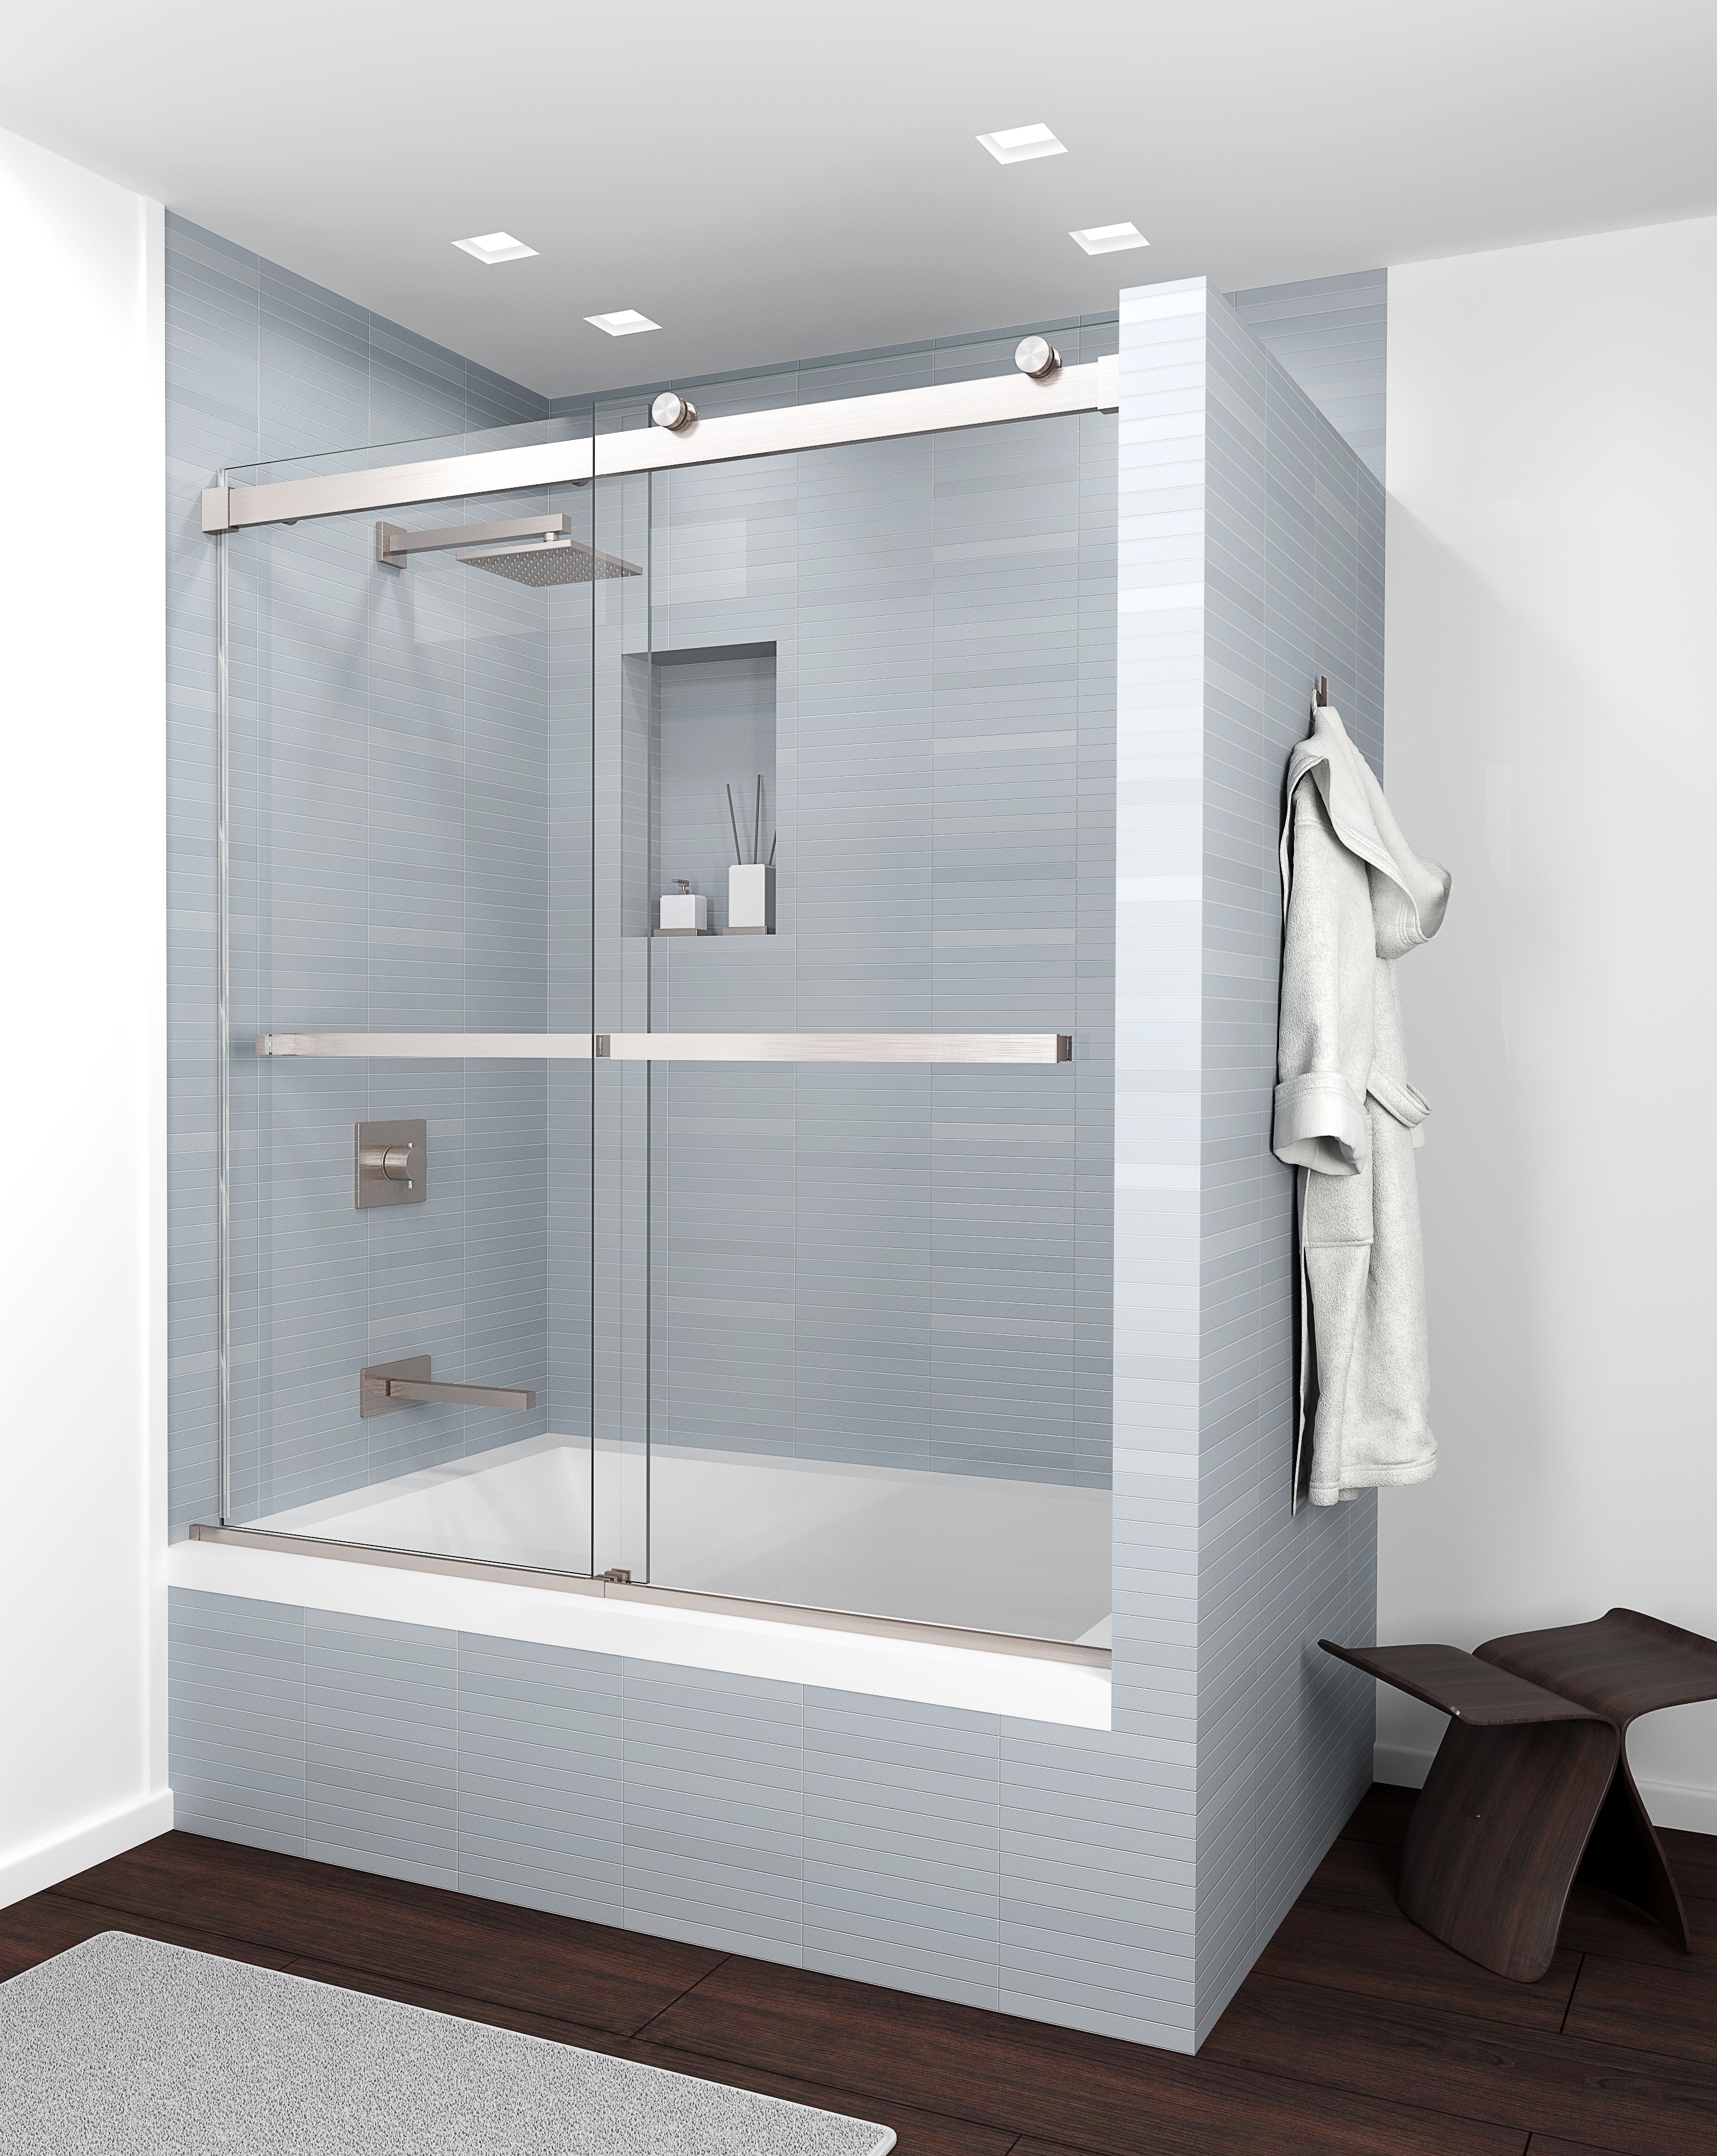 homes tub combo shower ideas for pin bathtubs modern doors bathtub unique